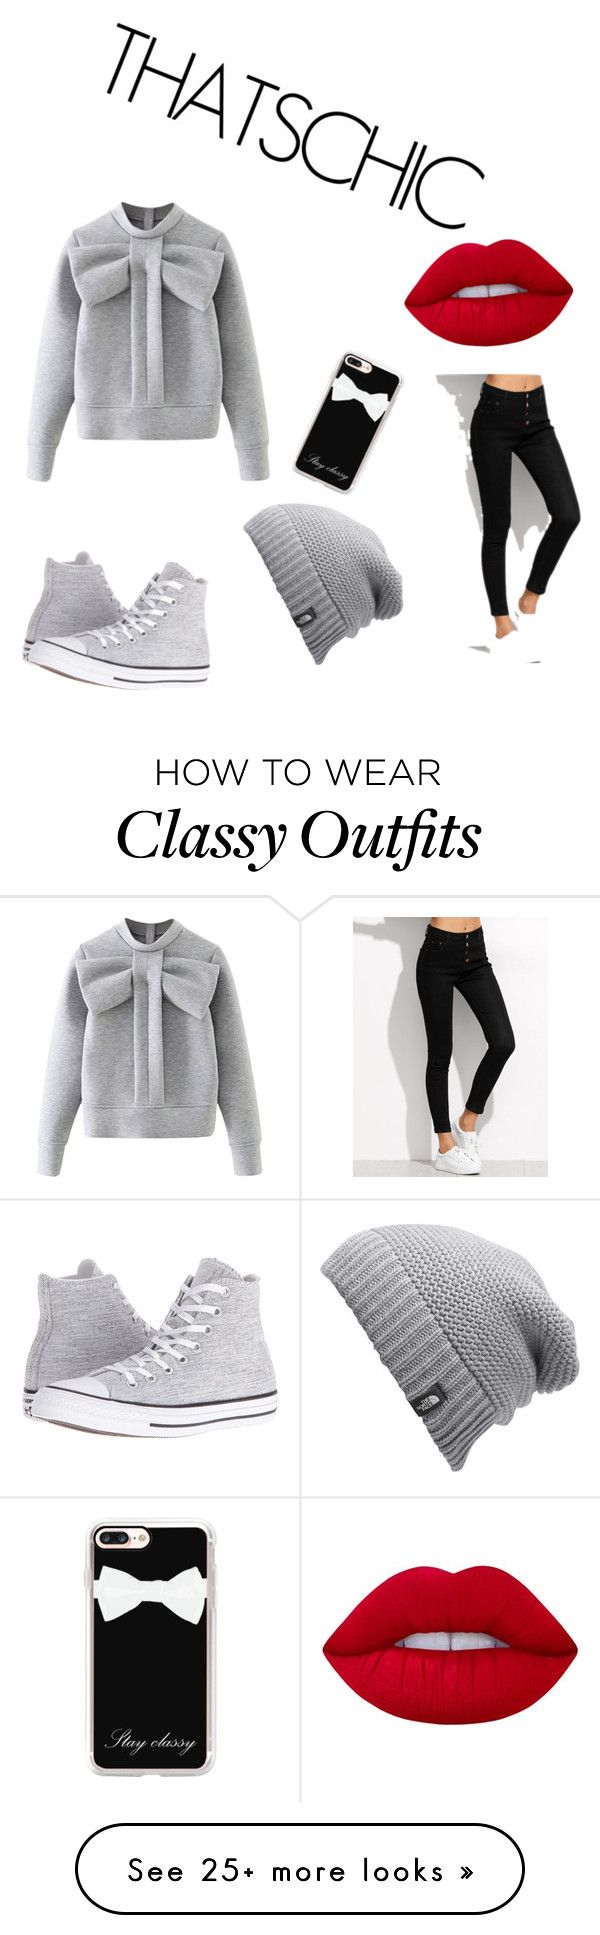 """chic casual"" by mythzard-thelisma on Polyvore featuring WithChic, Converse, Casetify, The North Face and Lime Crime"